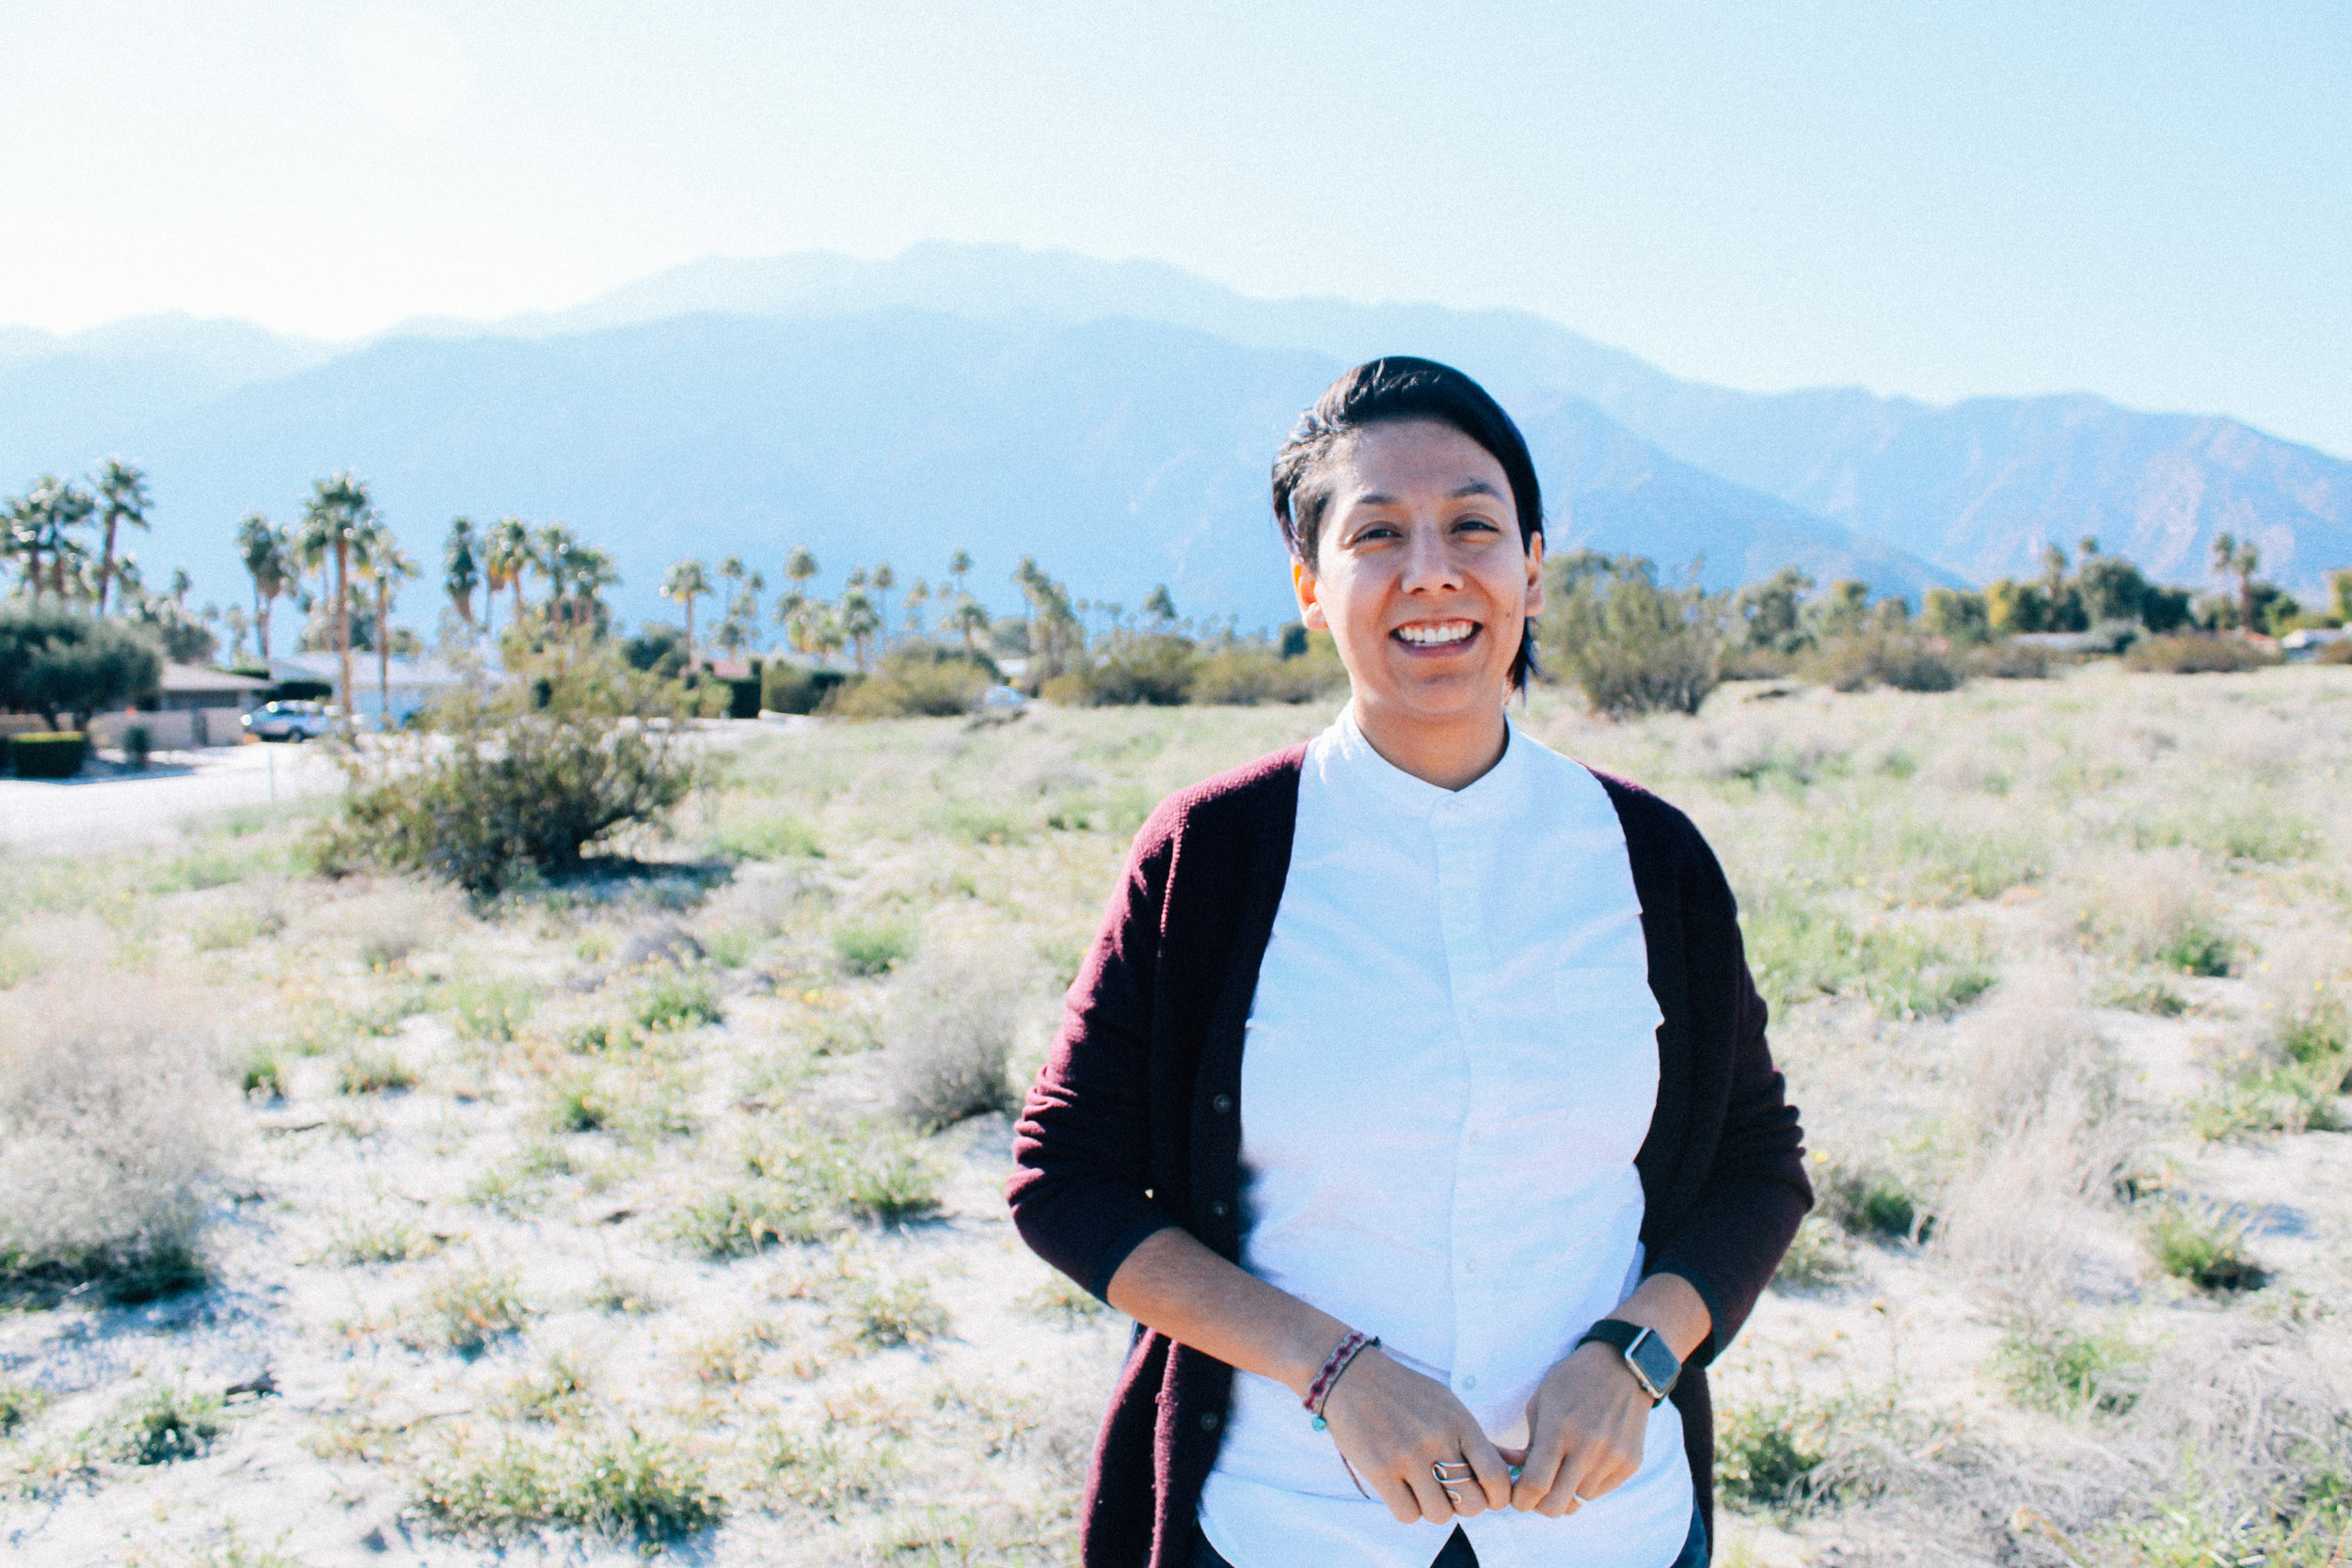 alexis ortegaAdmin & Social Media techie - Alexis (she/her, they/them) is queer AF, holding it down in community in Palm Springs, CA, working with and in the intersections of local communities of color, queer and trans folks, and young people. Alexis is offering administrative and technical support in bringing the Black Trans Bike Experience to life in digital spaces.